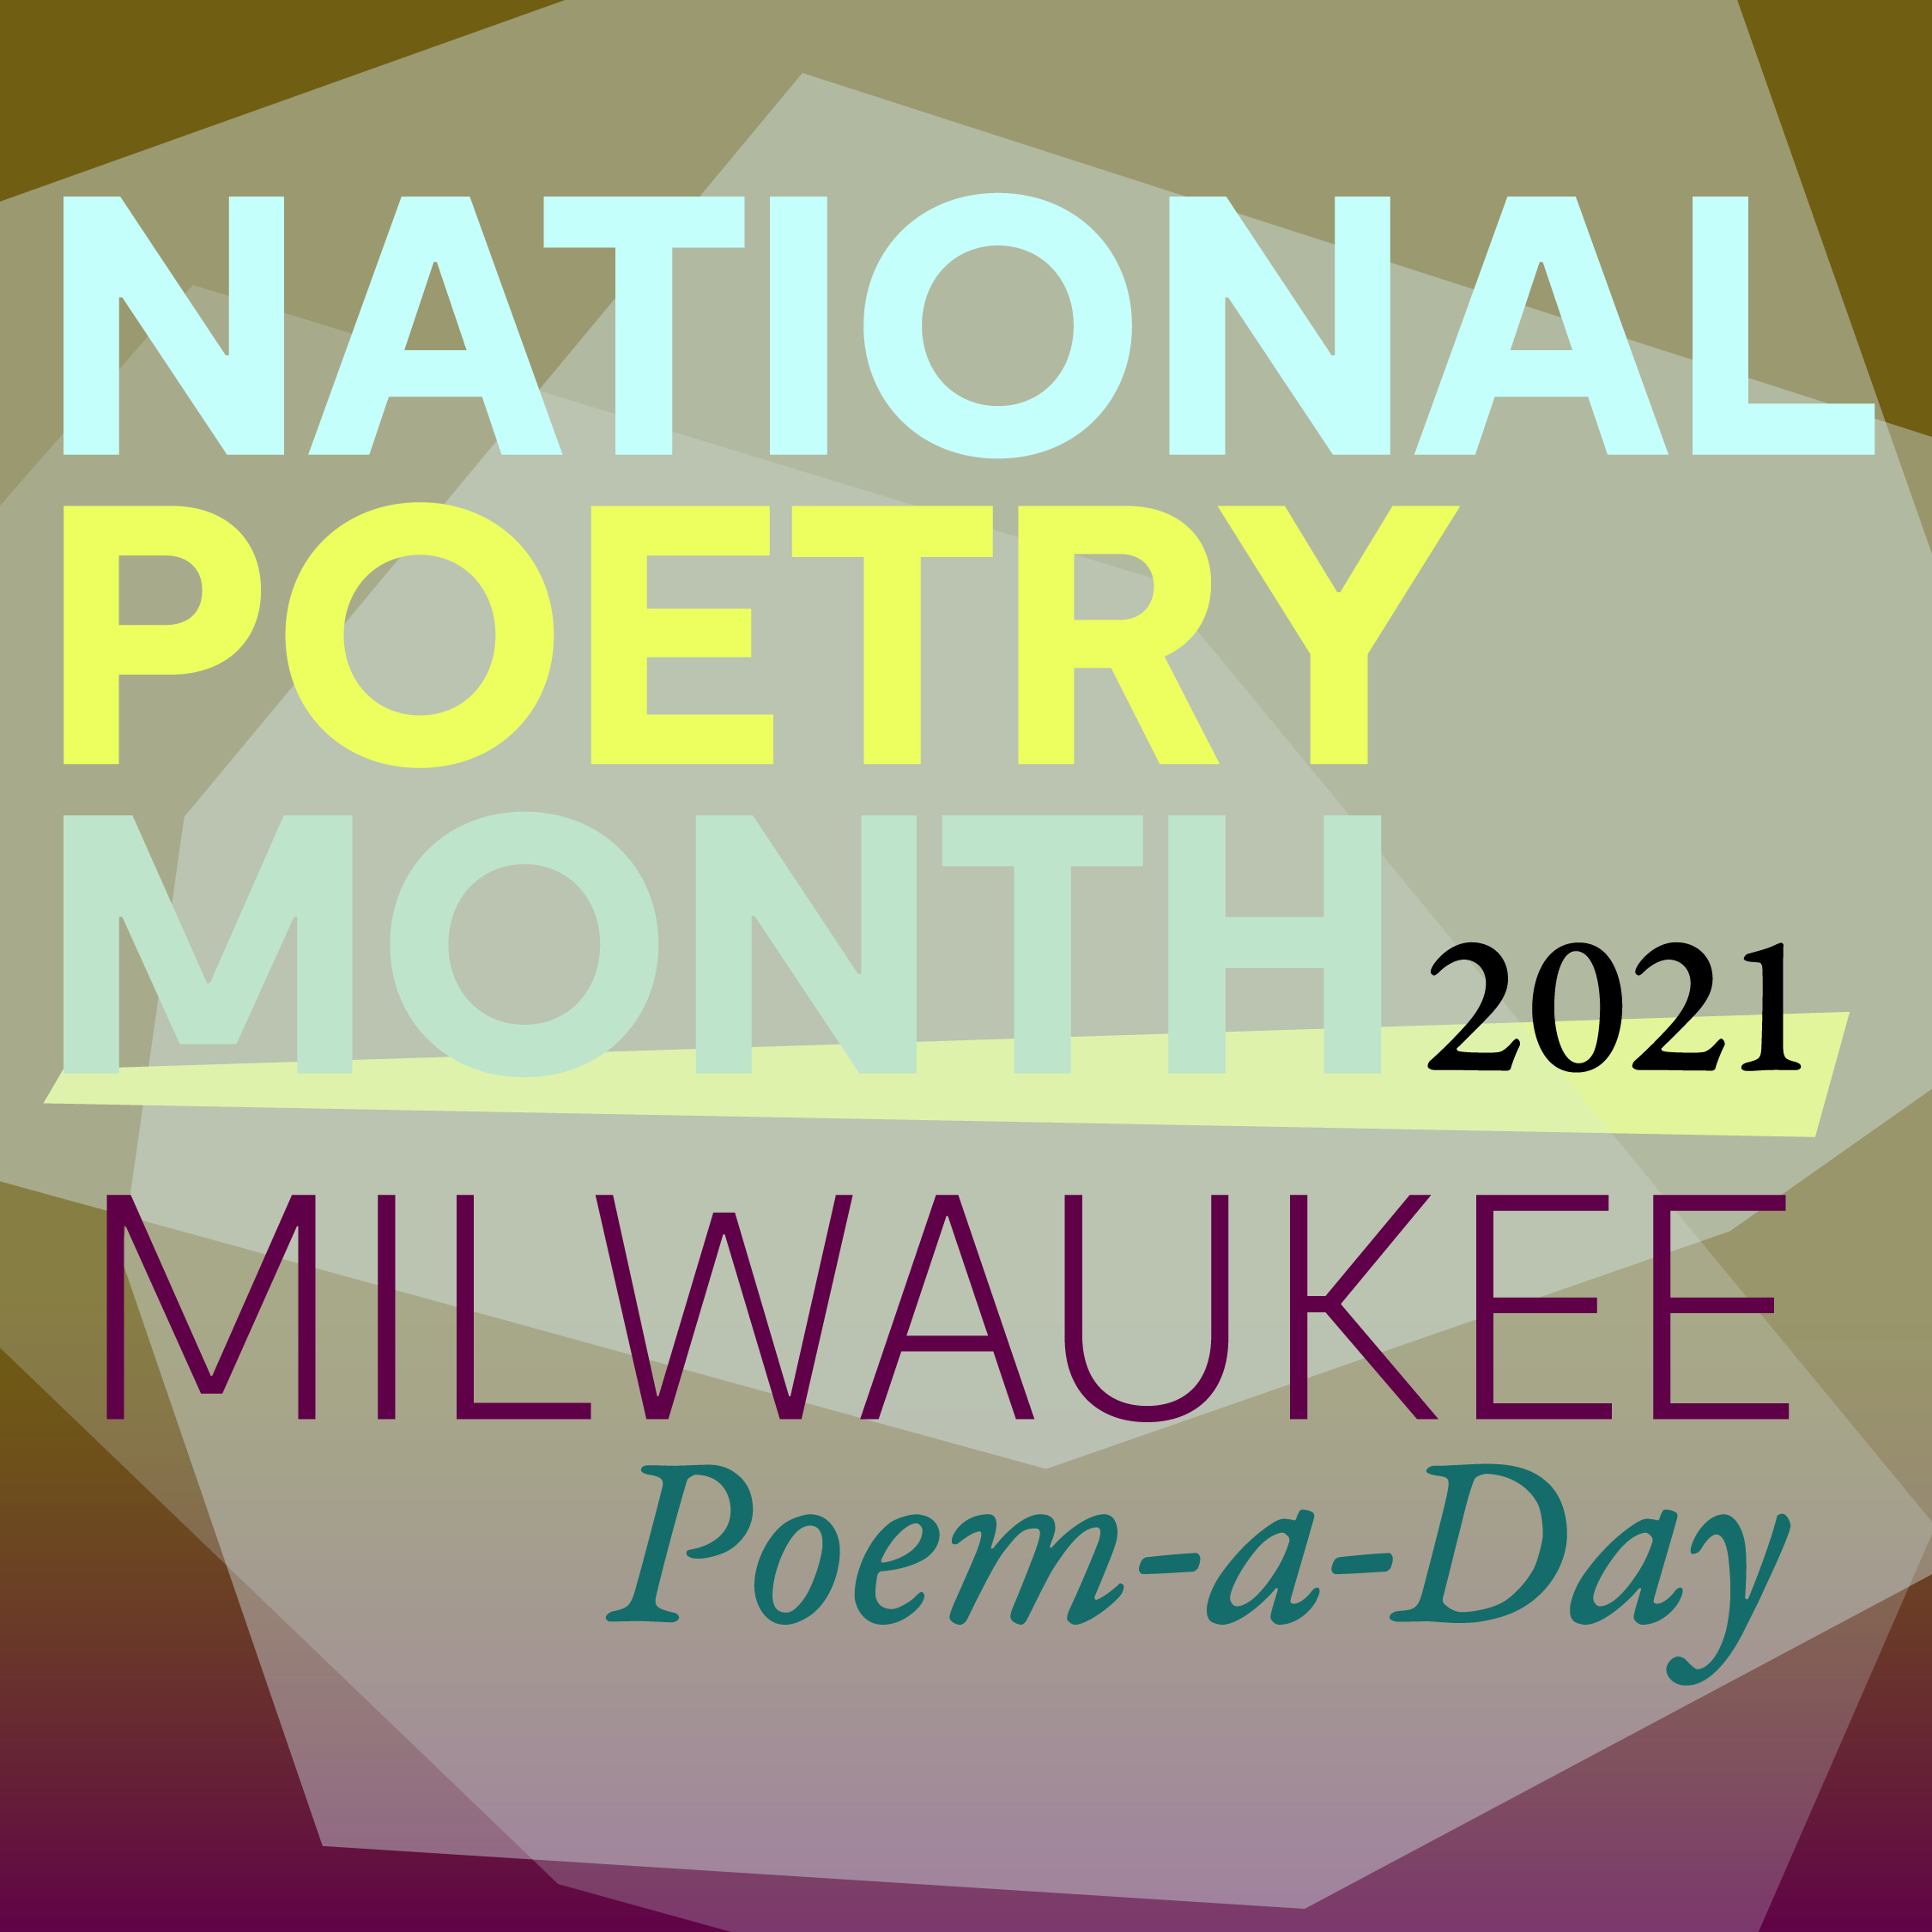 National-Poetry-Month-2021_IG_MKE-Poem-a-Day-02